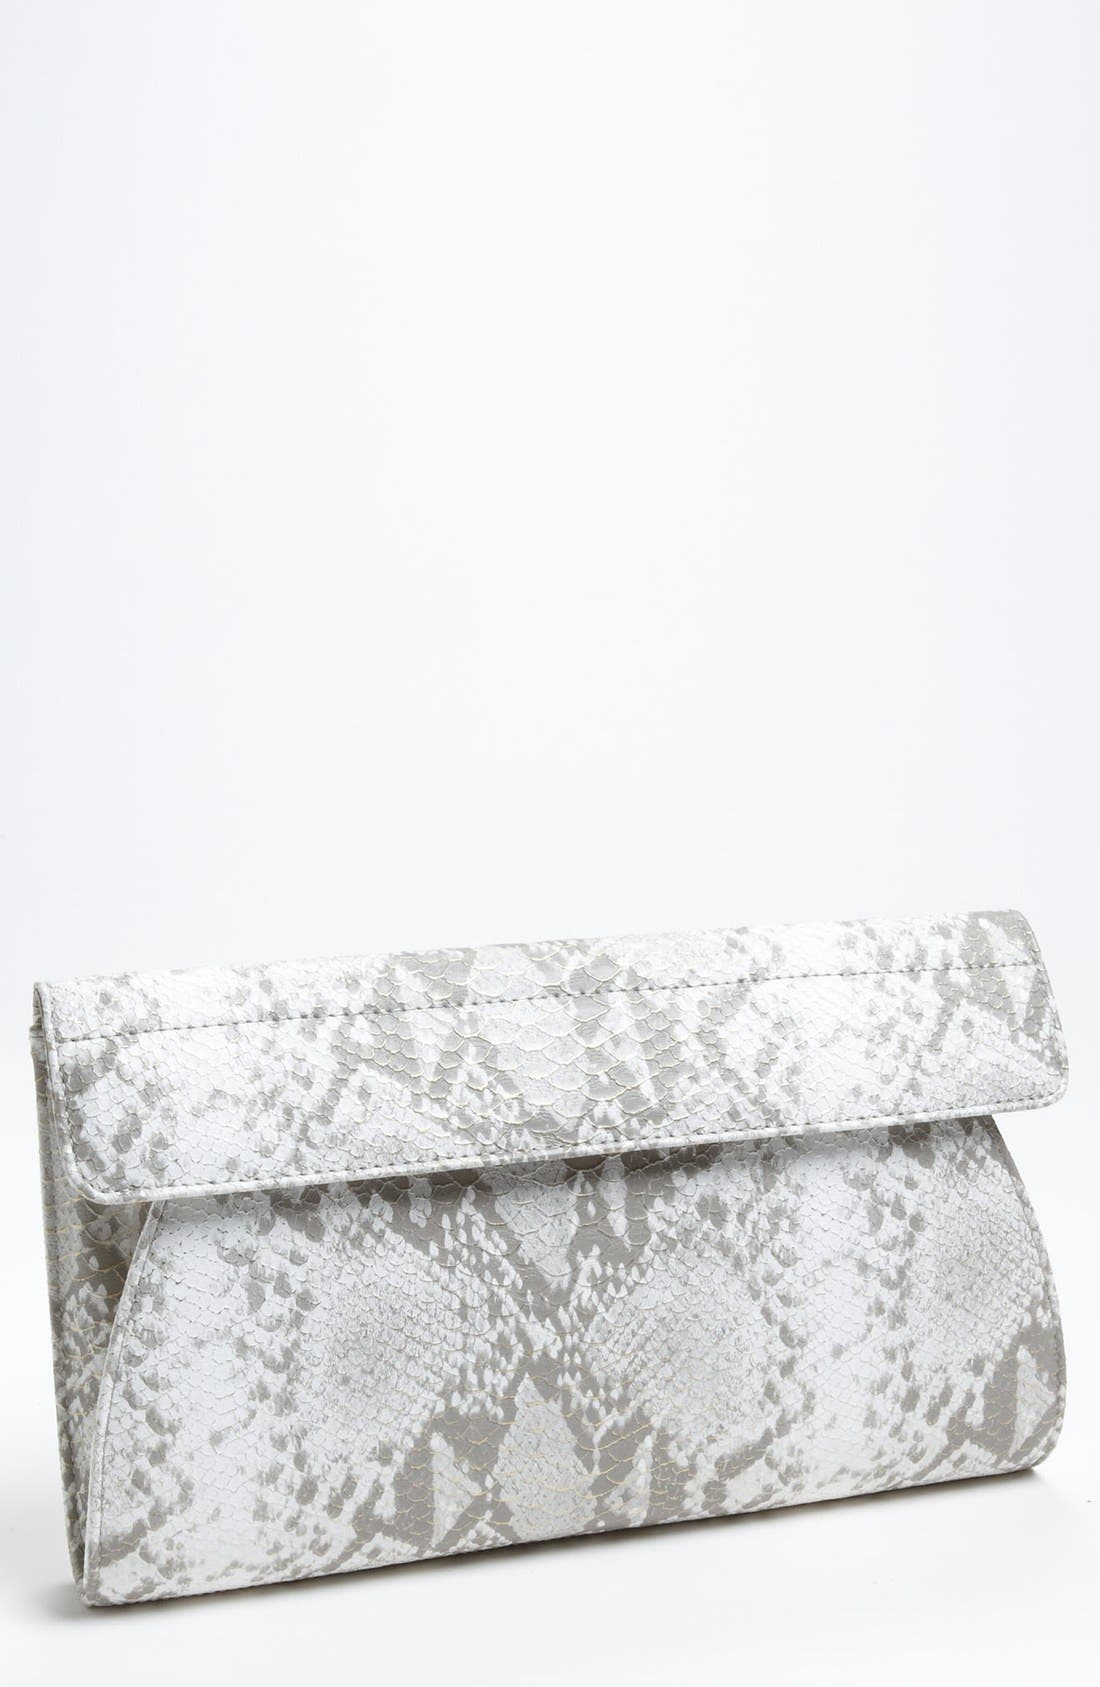 Main Image - Urban Expressions Handbags Snake Embossed Clutch